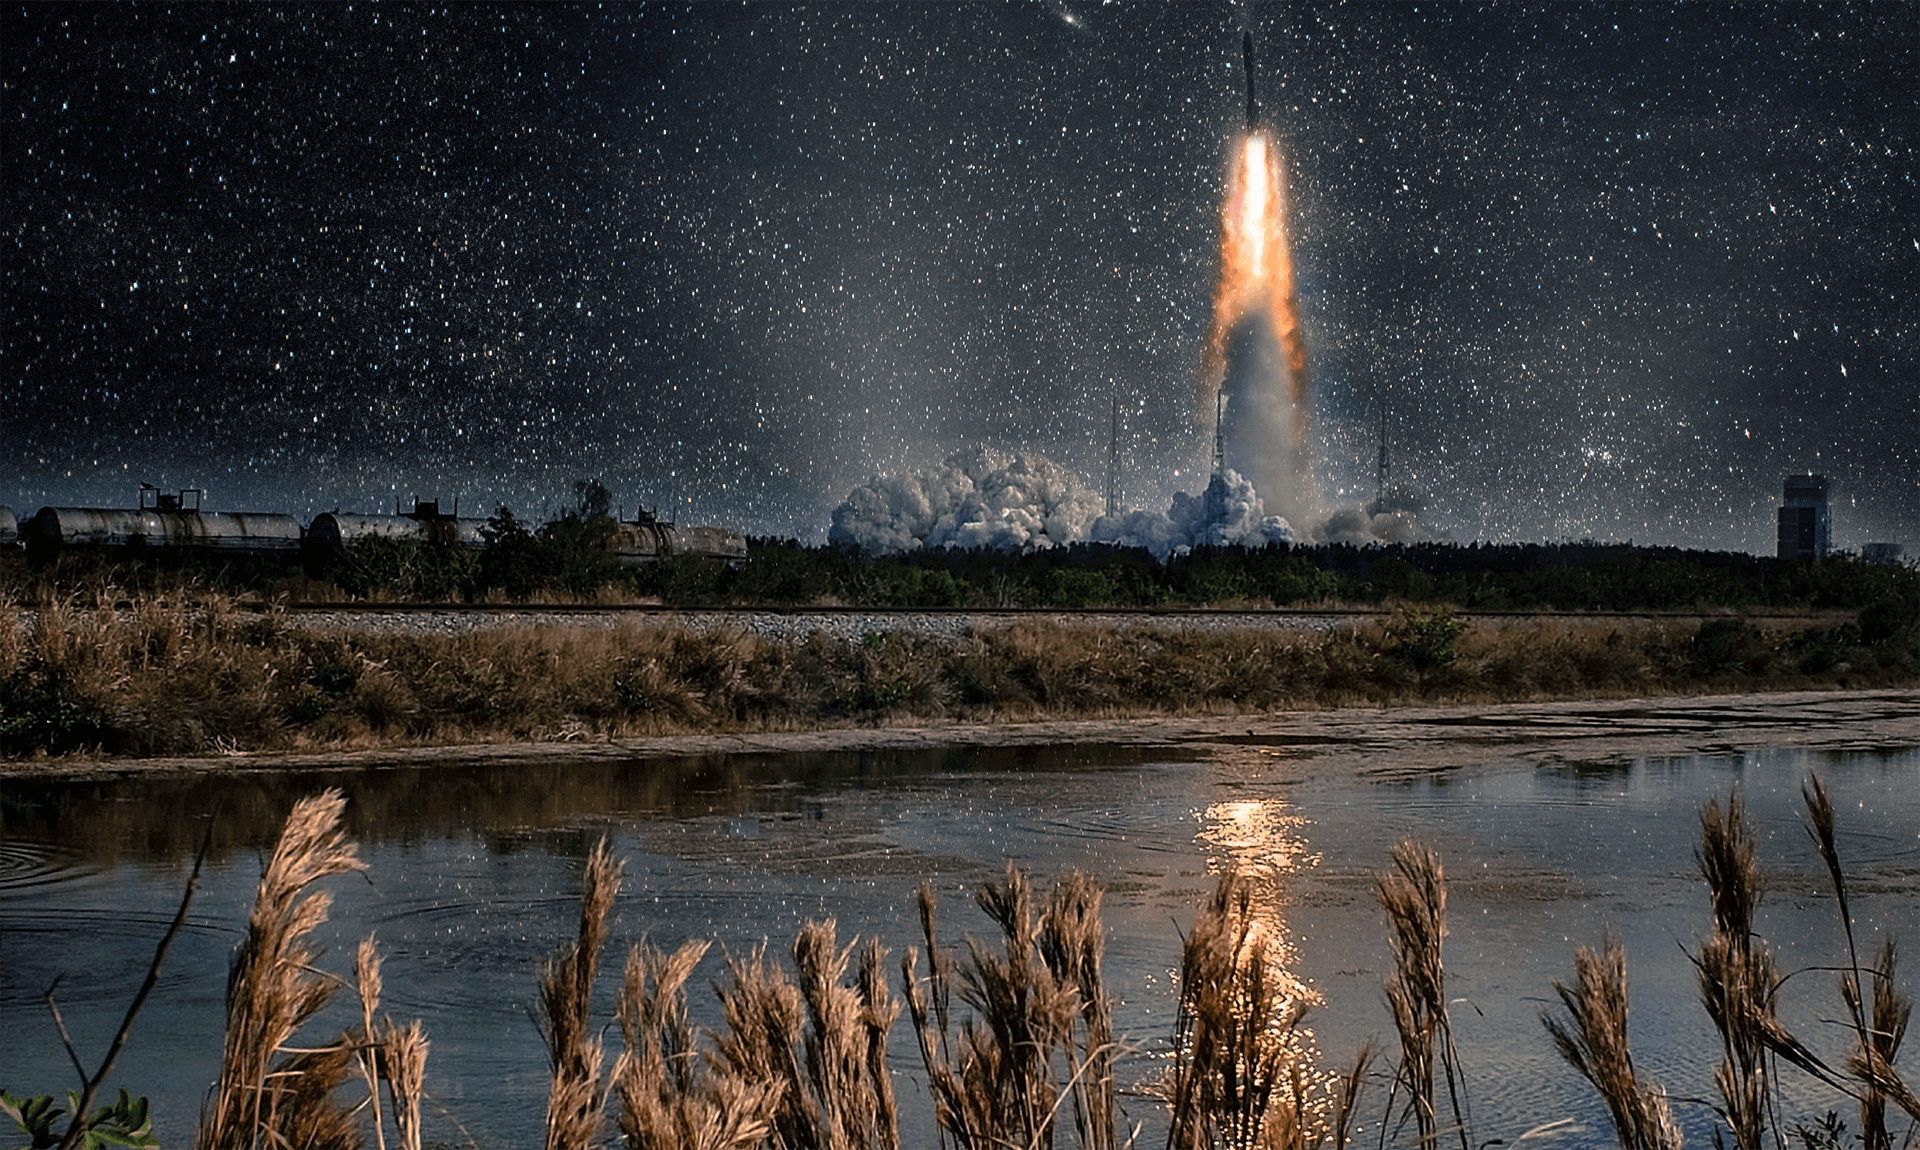 Rocket Launch Image